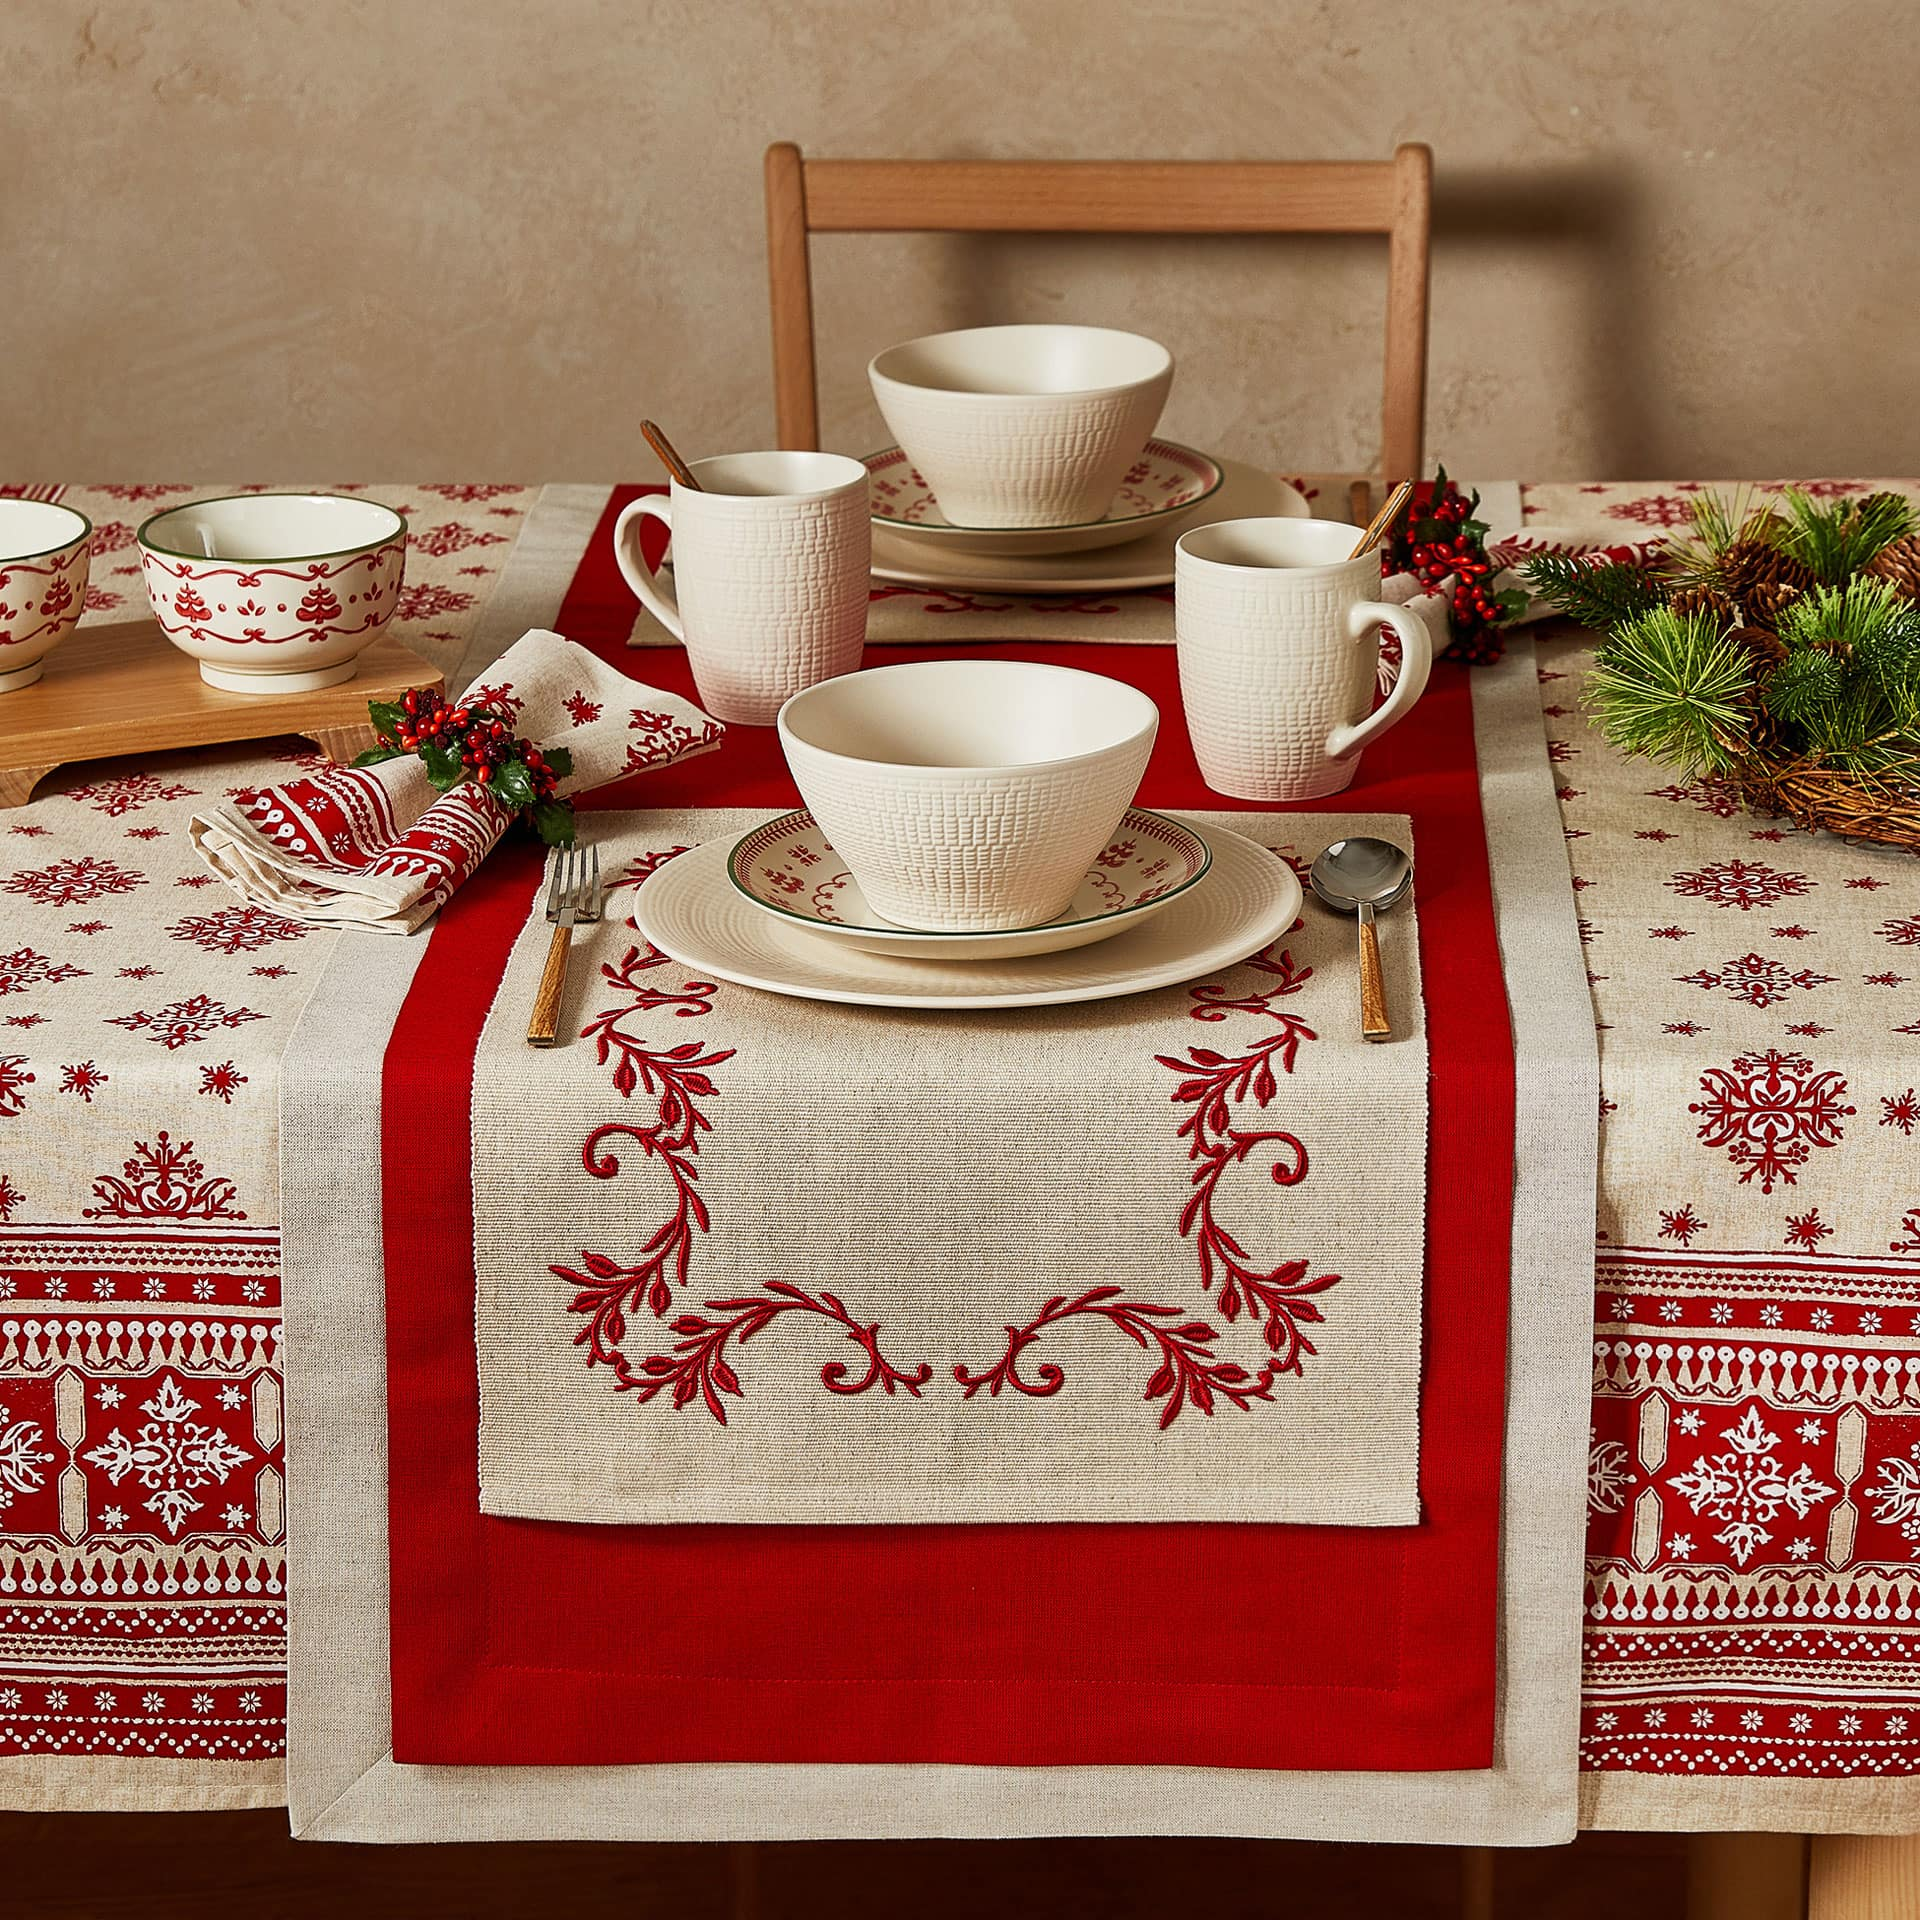 Double layer table runner Place mats and table runners